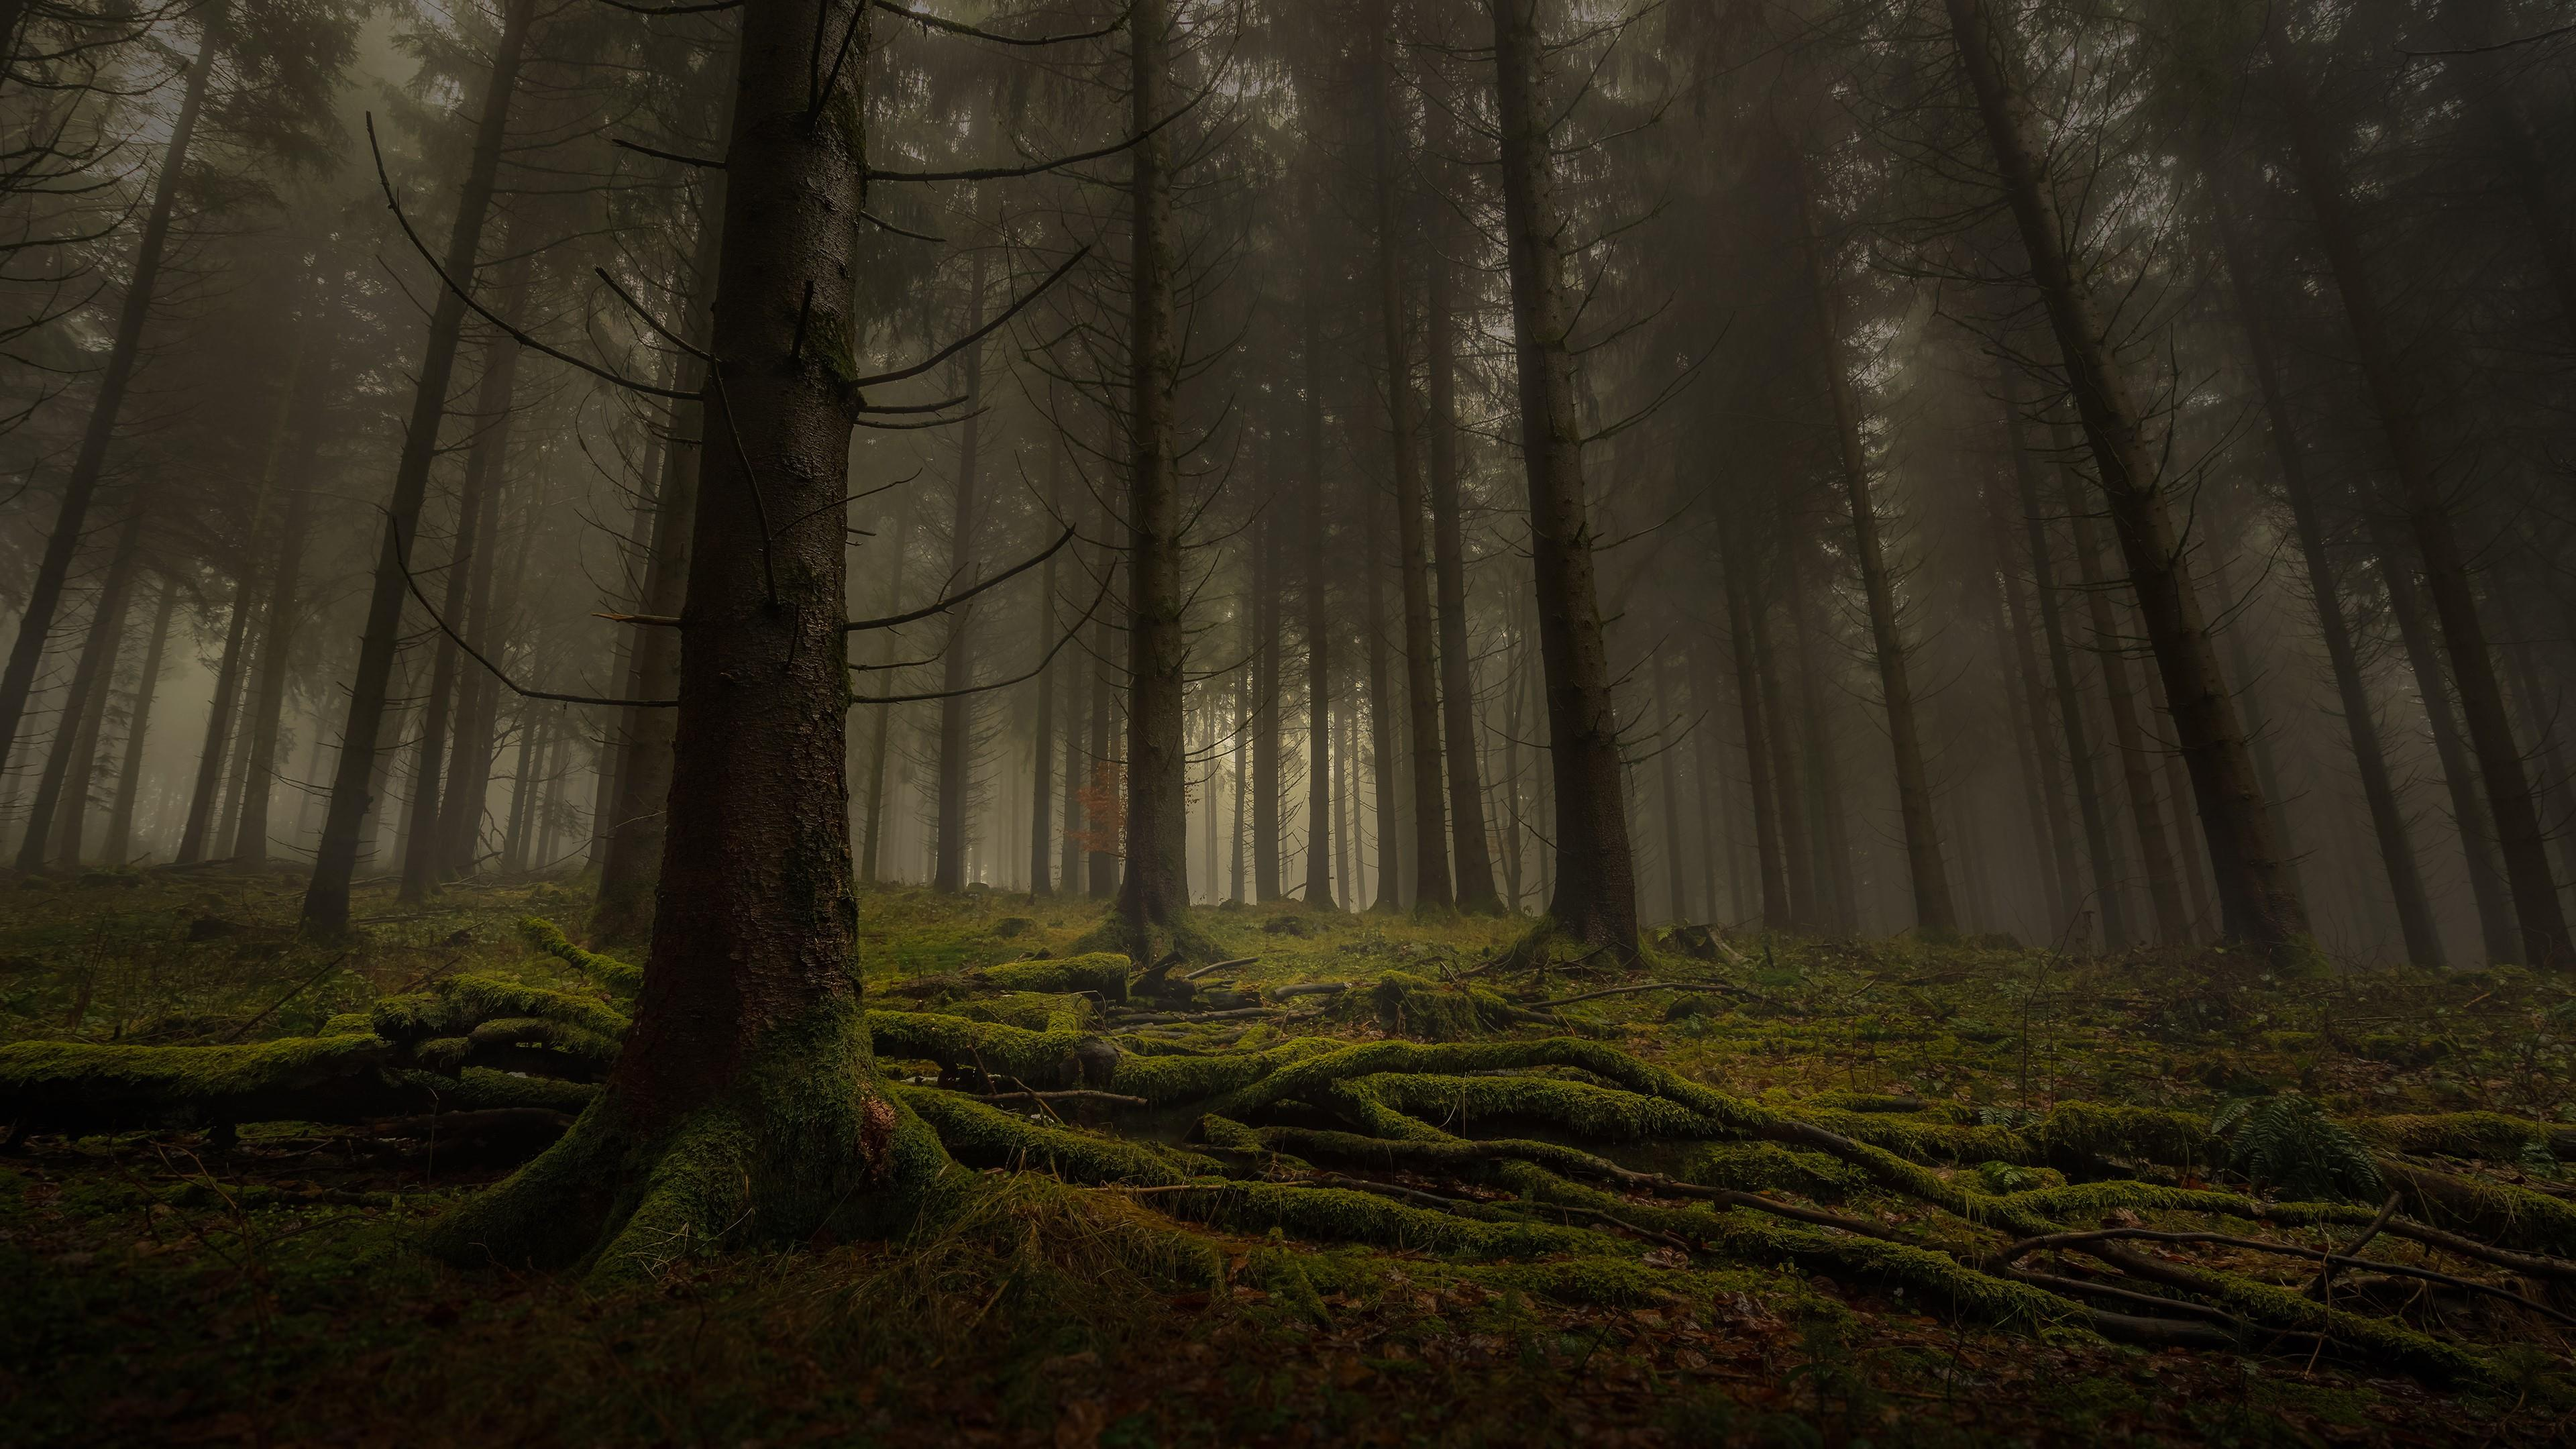 Mossy roots in misty forest wallpaper